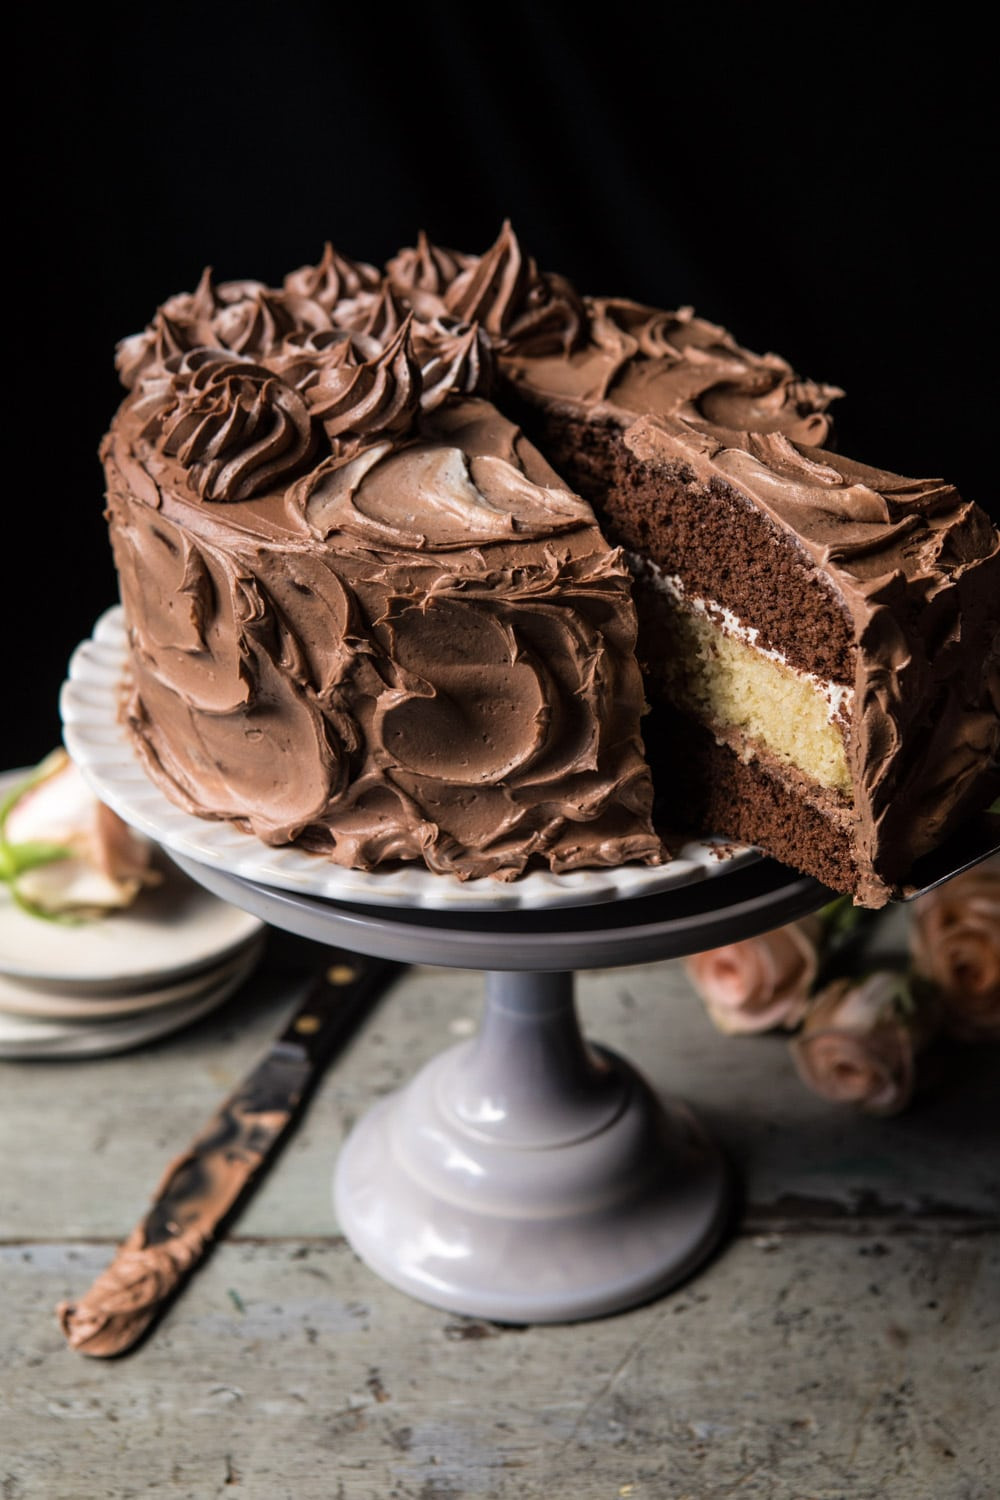 Best ideas about Chocolate Birthday Cake Recipes . Save or Pin Better To her Chocolate Vanilla Birthday Cake Half Now.